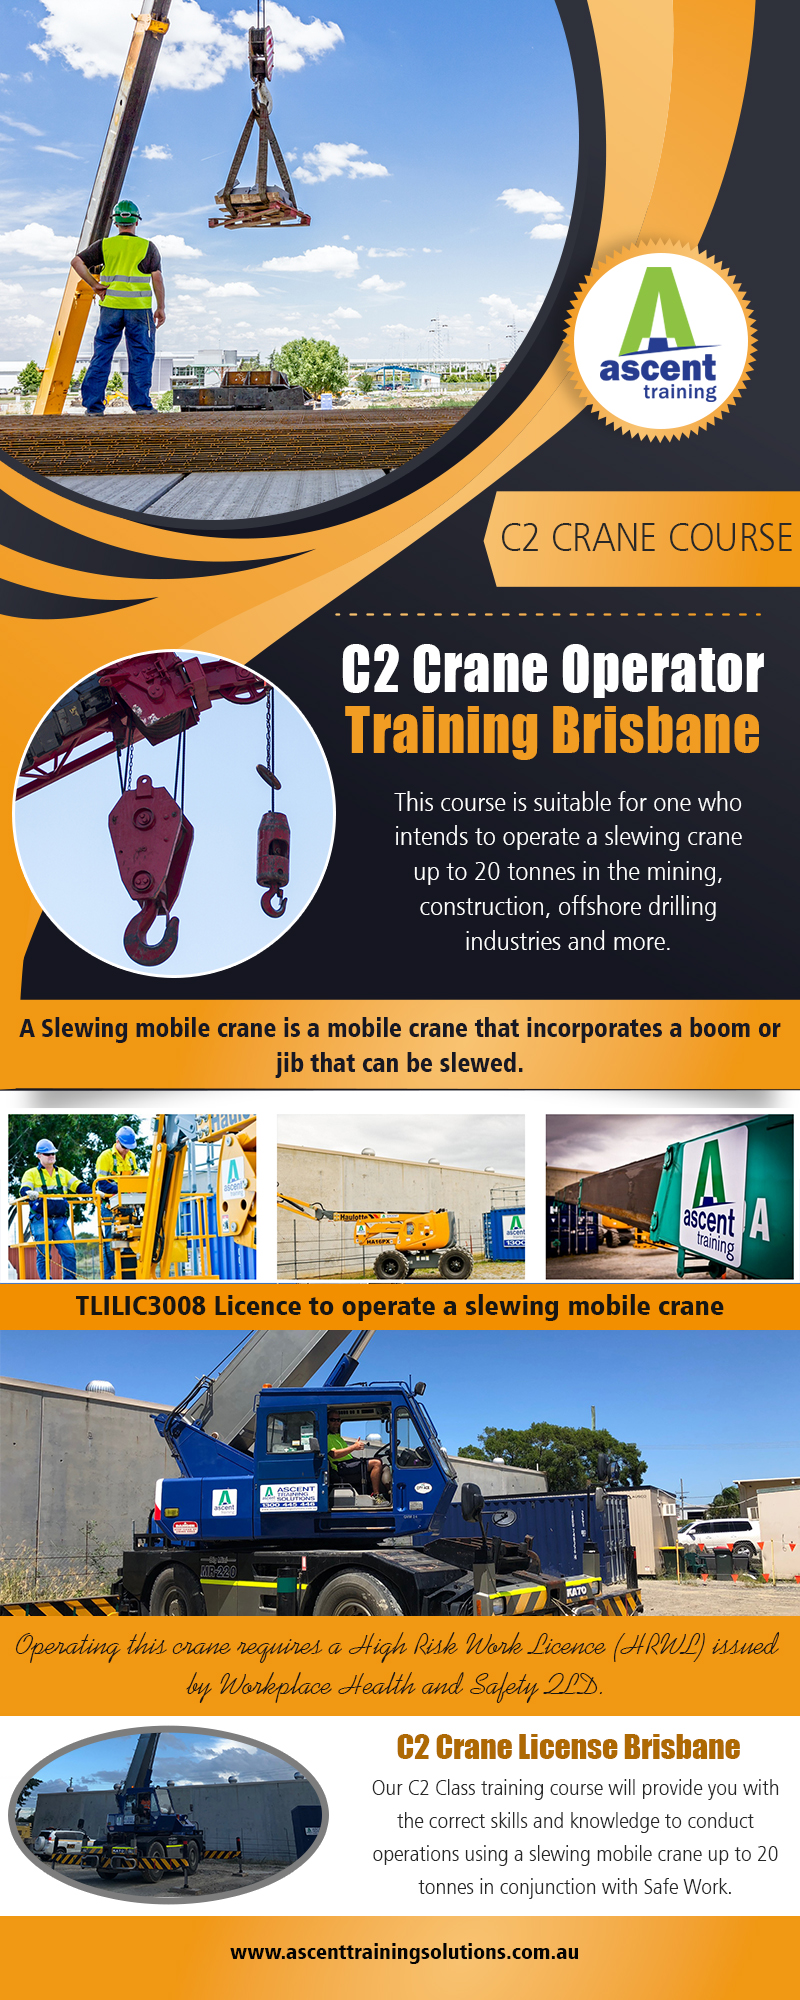 C2 crane operator training Brisbane